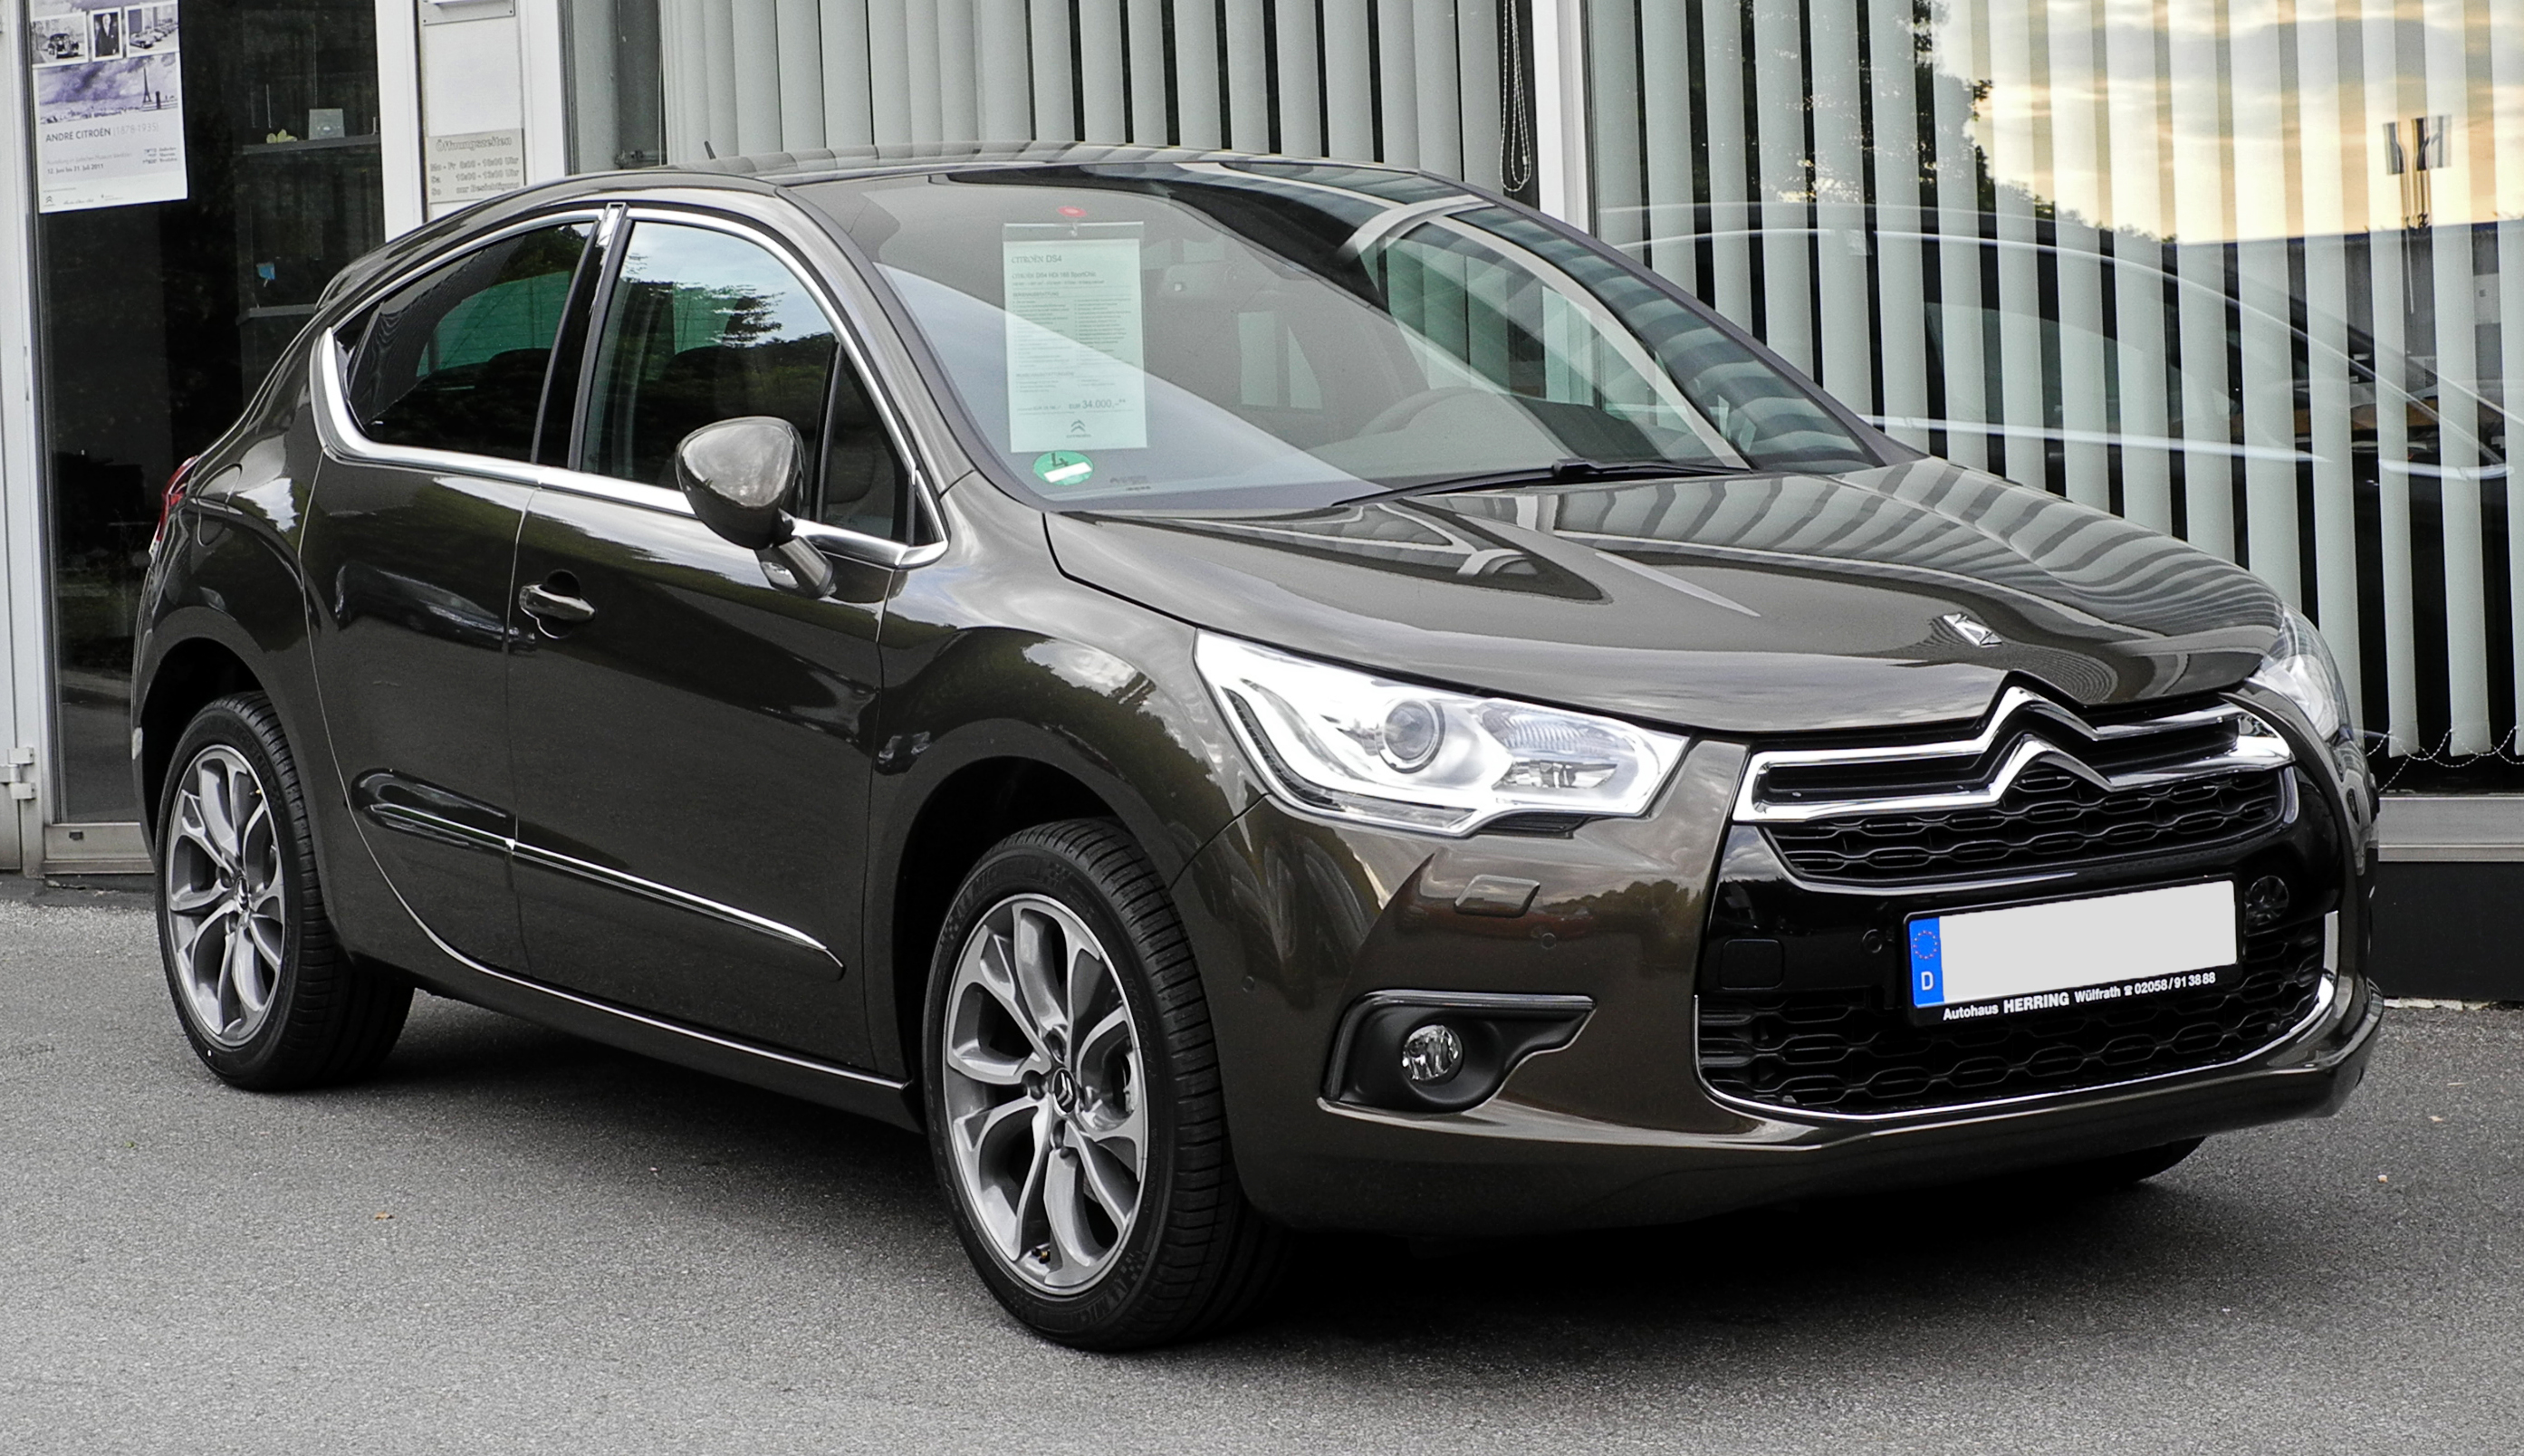 Citroen DS4 2011 - 2015 Hatchback 5 door #5